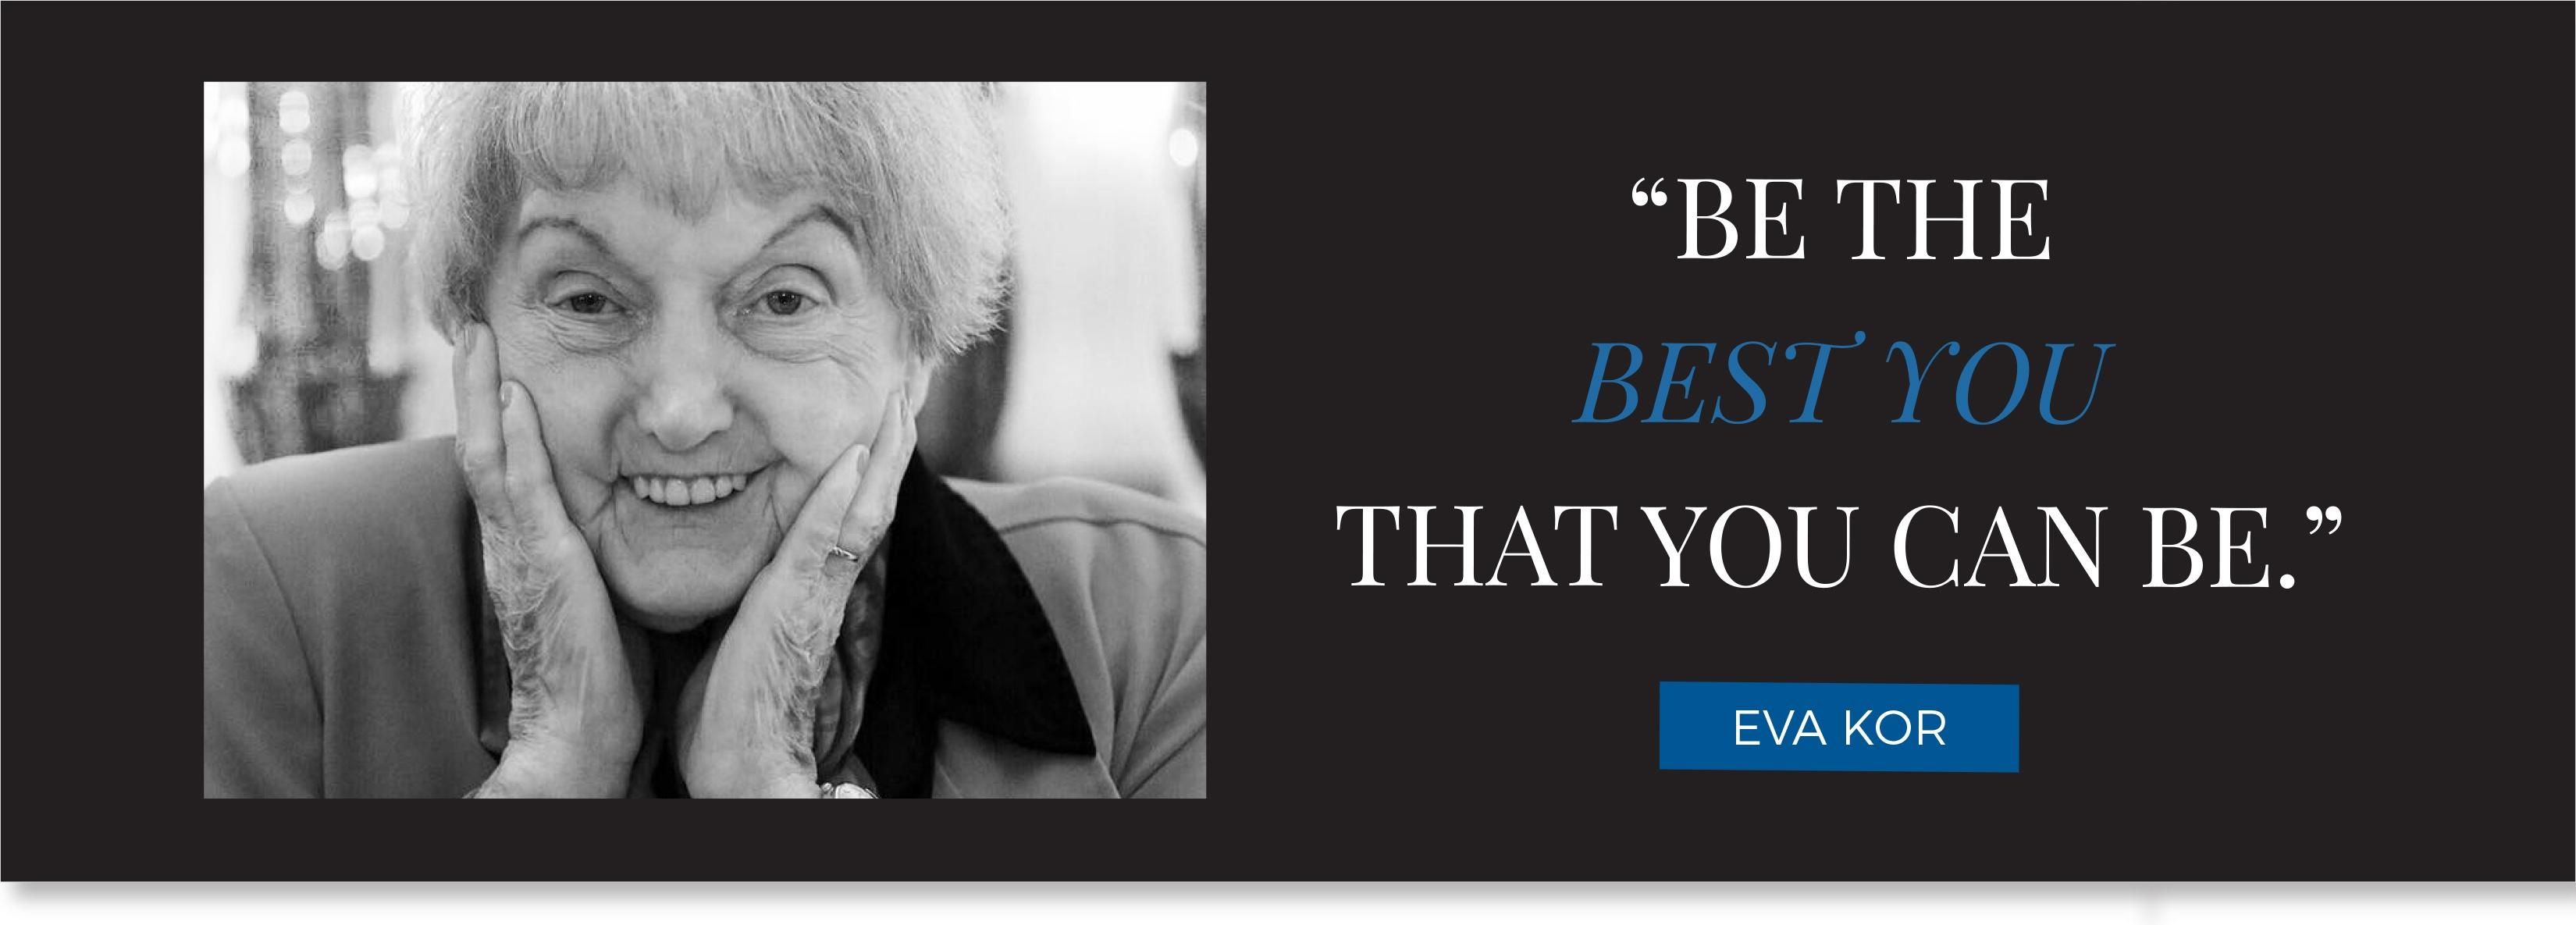 """Be the best you that you can be."" - Eva Kor– Eva Kor"